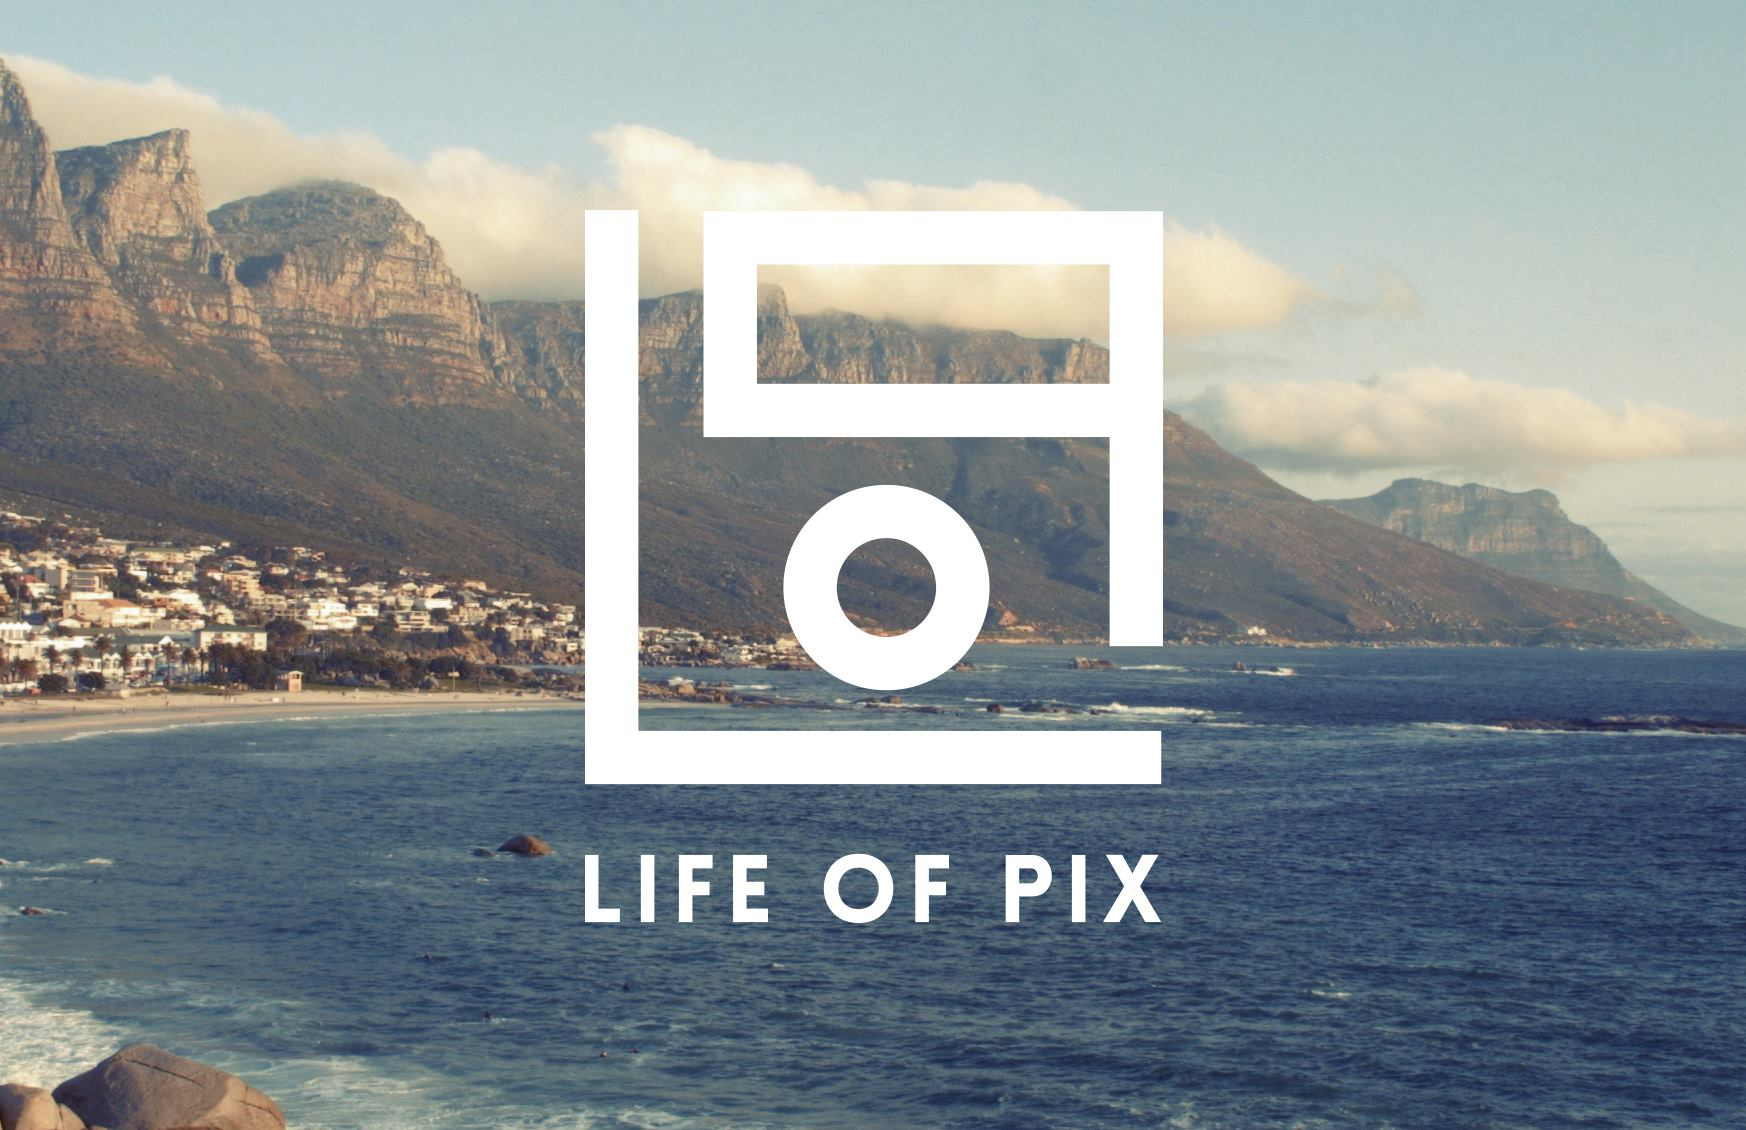 Free high resolution photography - Life of Pix